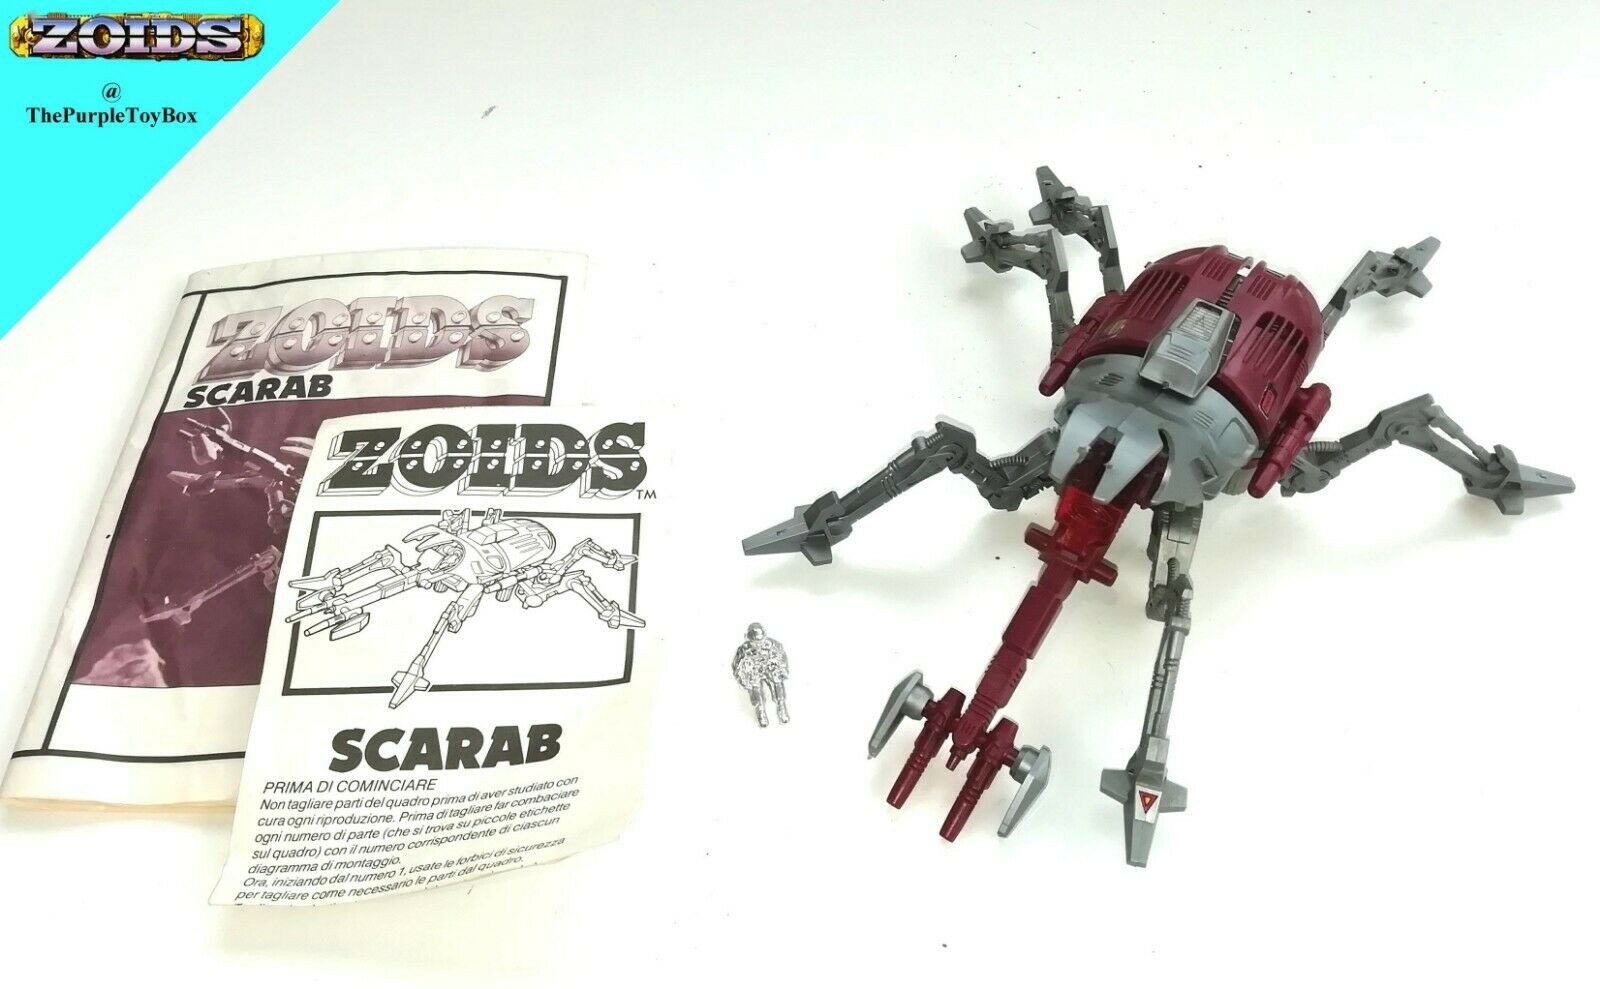 1980's Tomy Zoids OJR - (  EMZ-23 SCARAB SCARAB SCARAB ) Instructions But No Box (AB52) 22c7f1